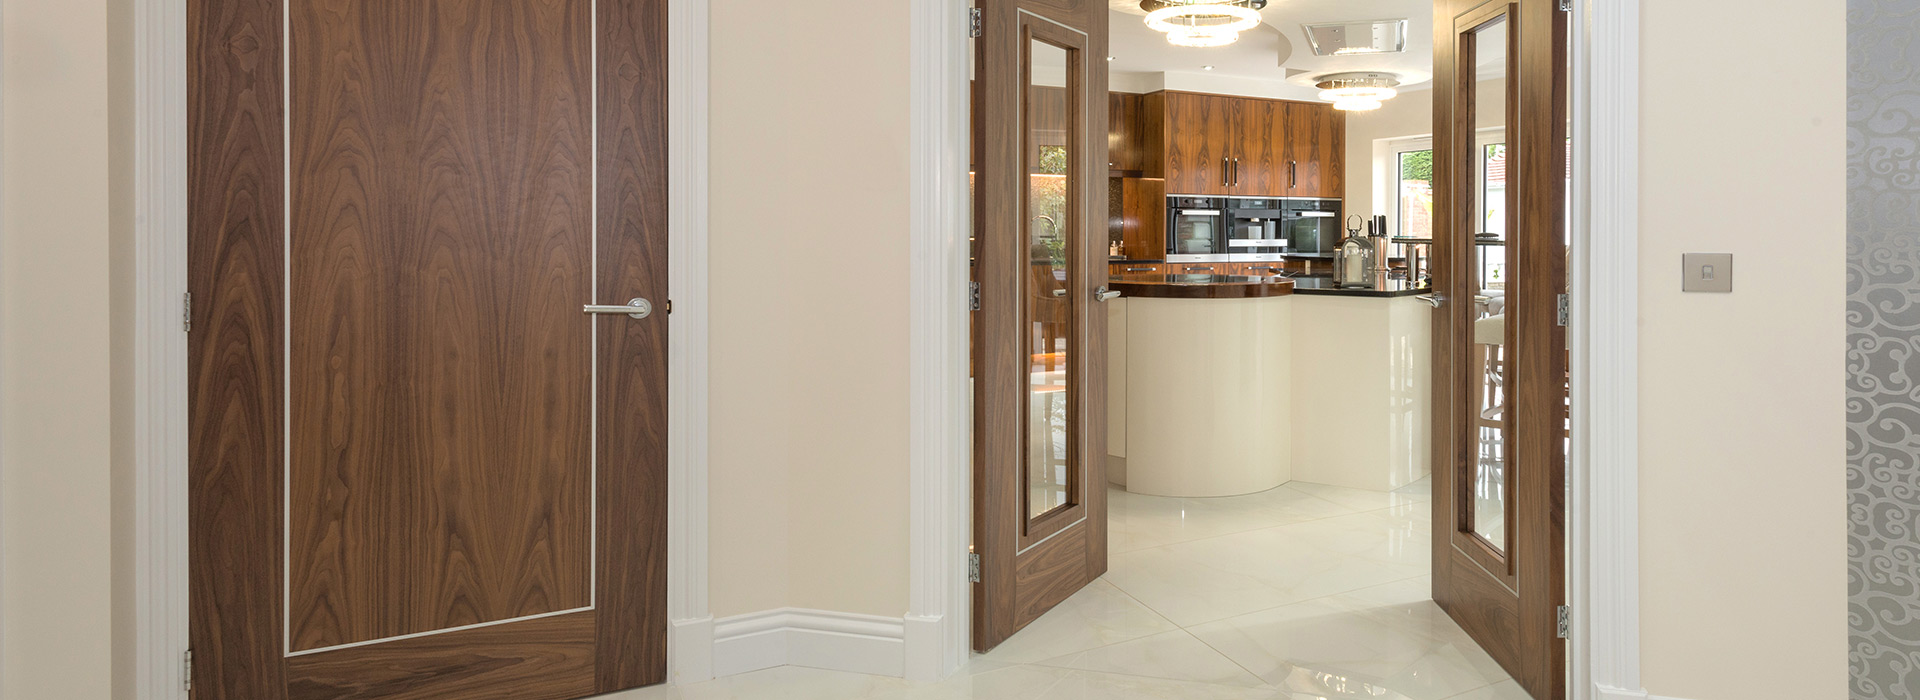 Modern kitchen with walnut double doors